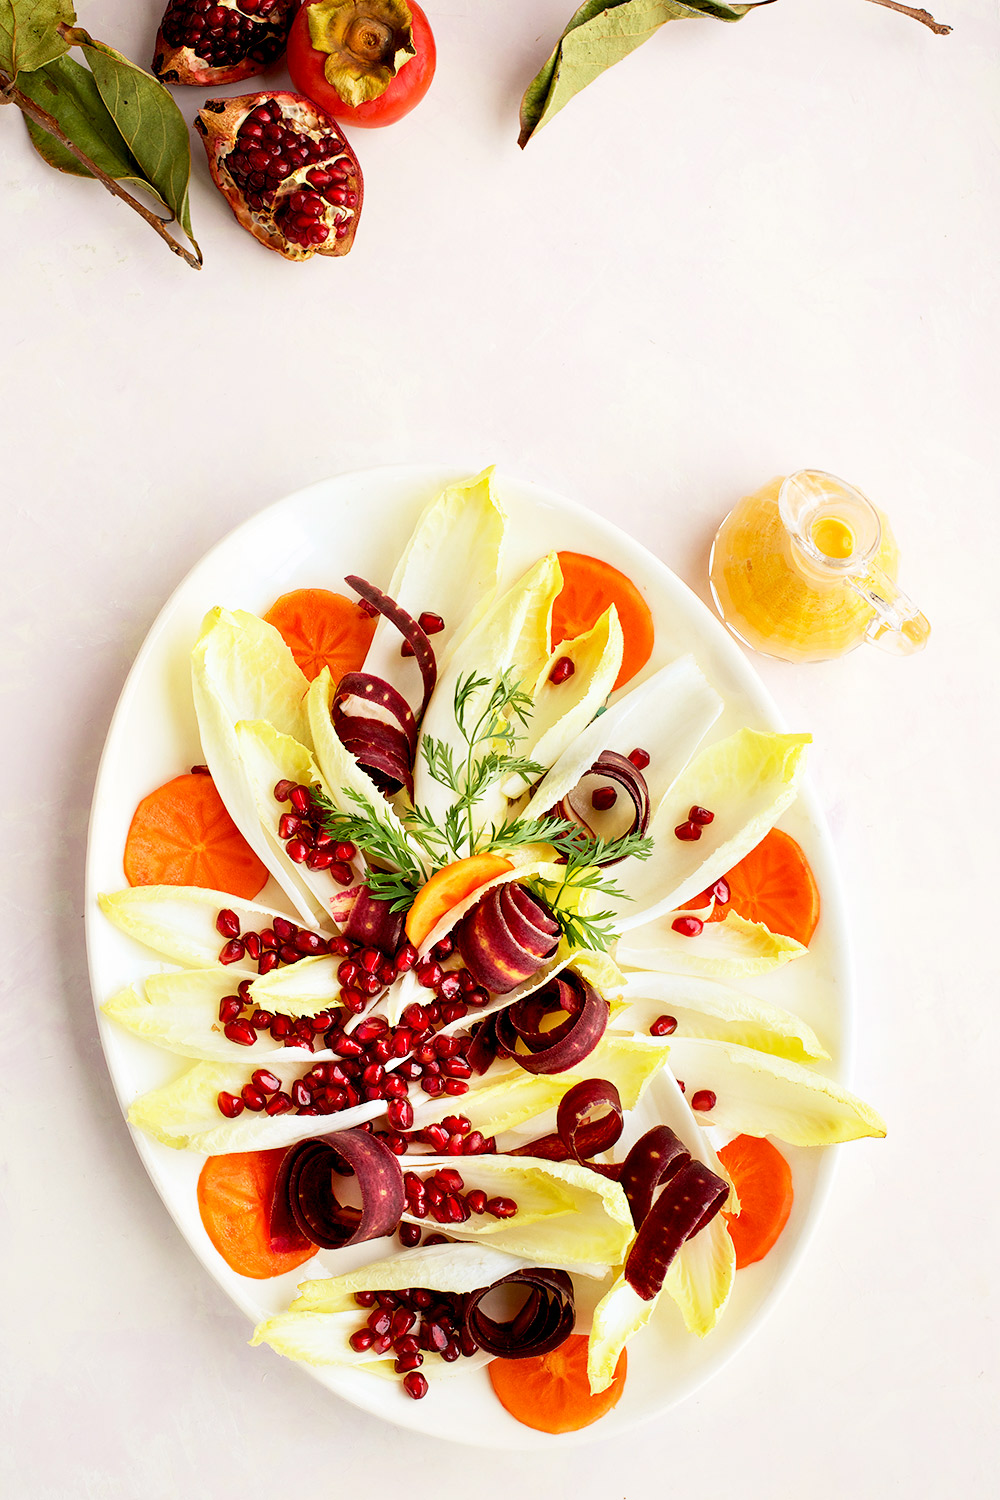 Endive Pomegranate Salad is a festive gluten free salad with a wonderful persimmon chevre vinaigrette.